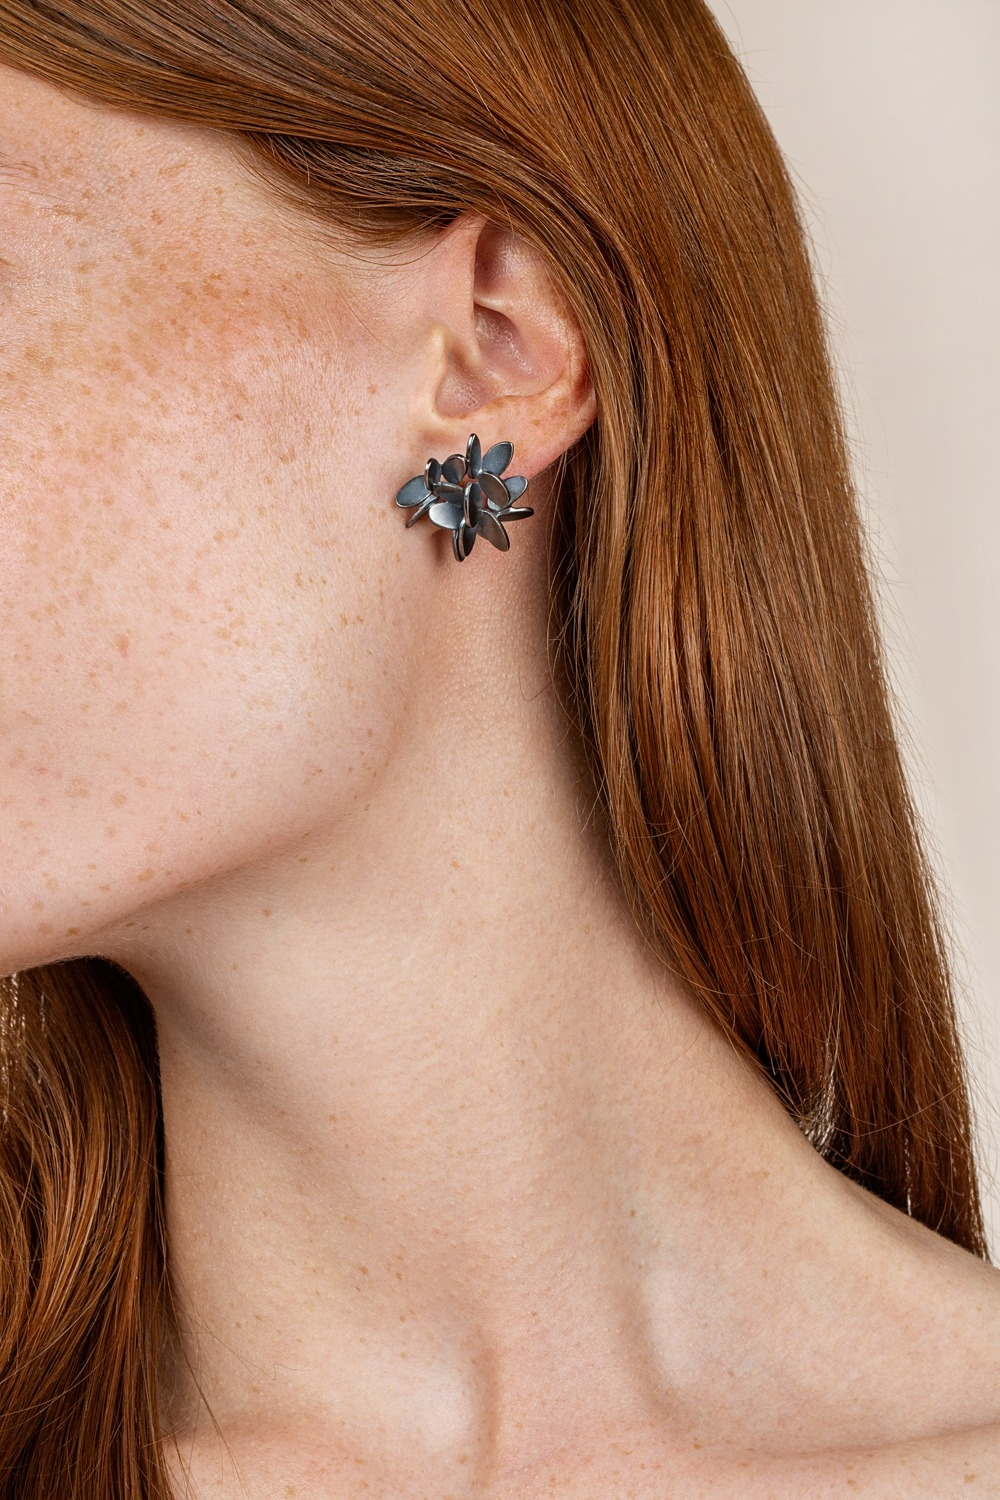 Lyng large statement silver earrings isnpired by leaves, nature and origami. Designed by Scandinavian jewelry designer Kaja Gjedebo